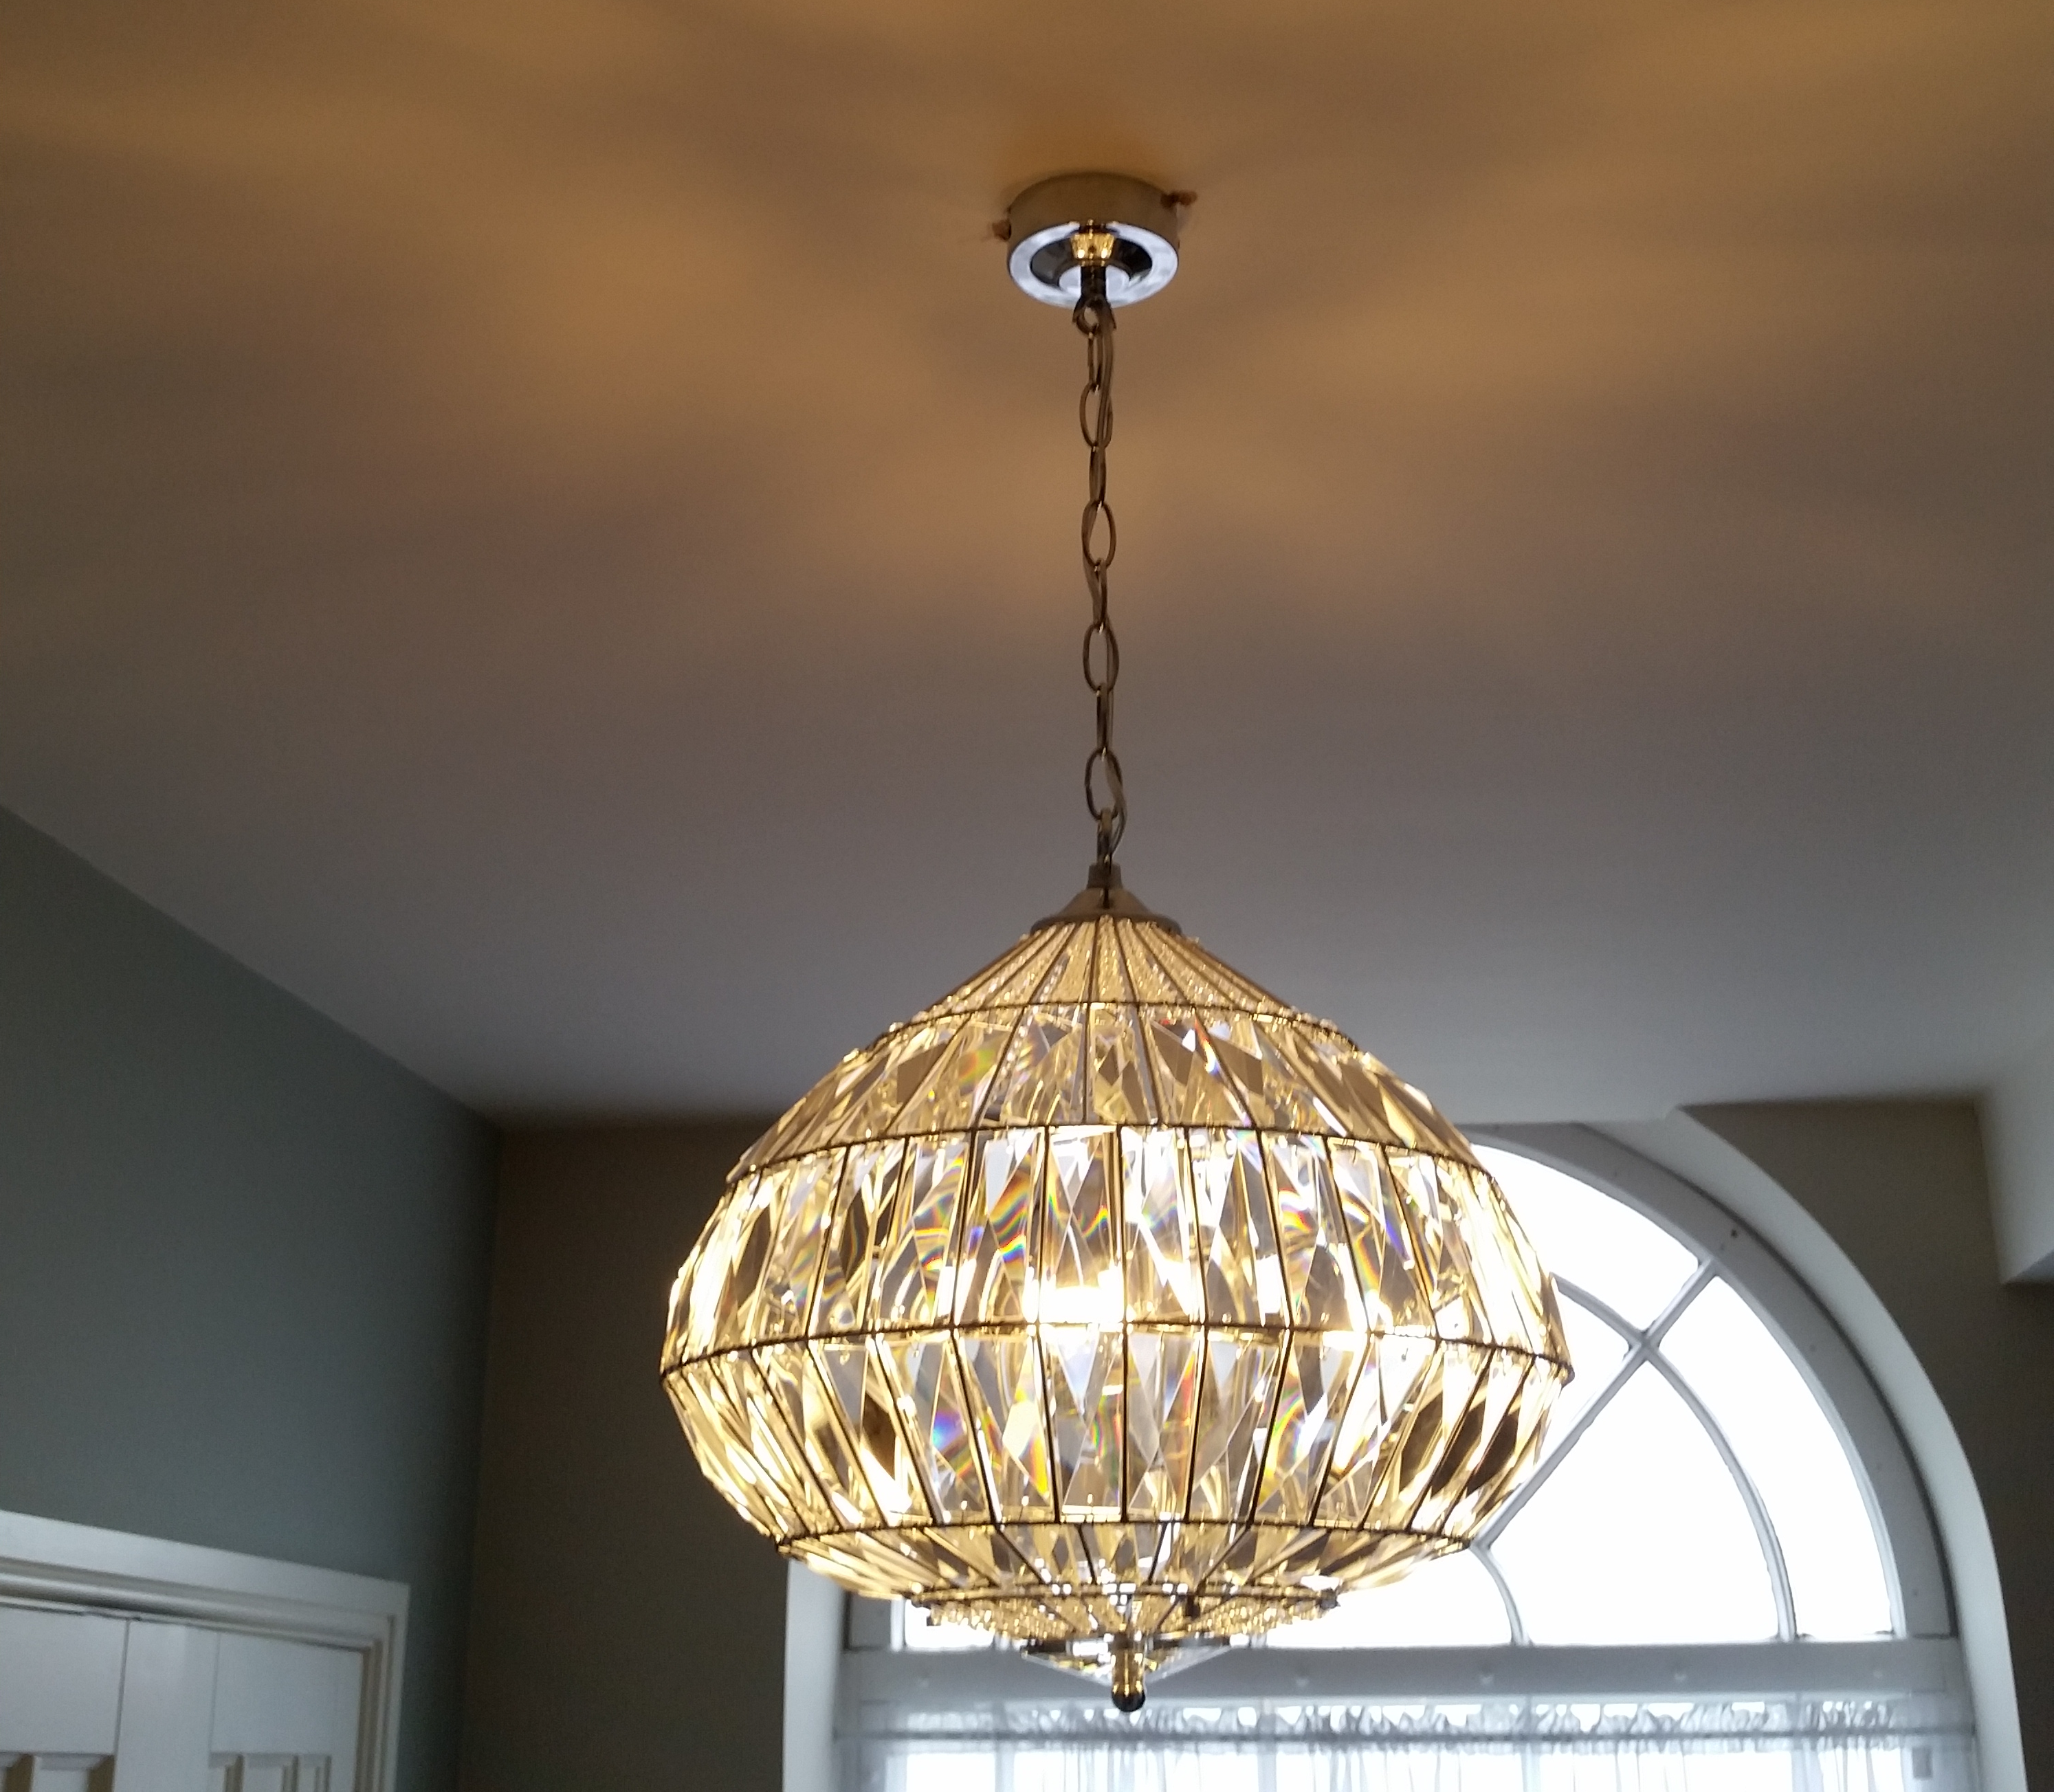 Pendant light installed in Congleton, Cheshire